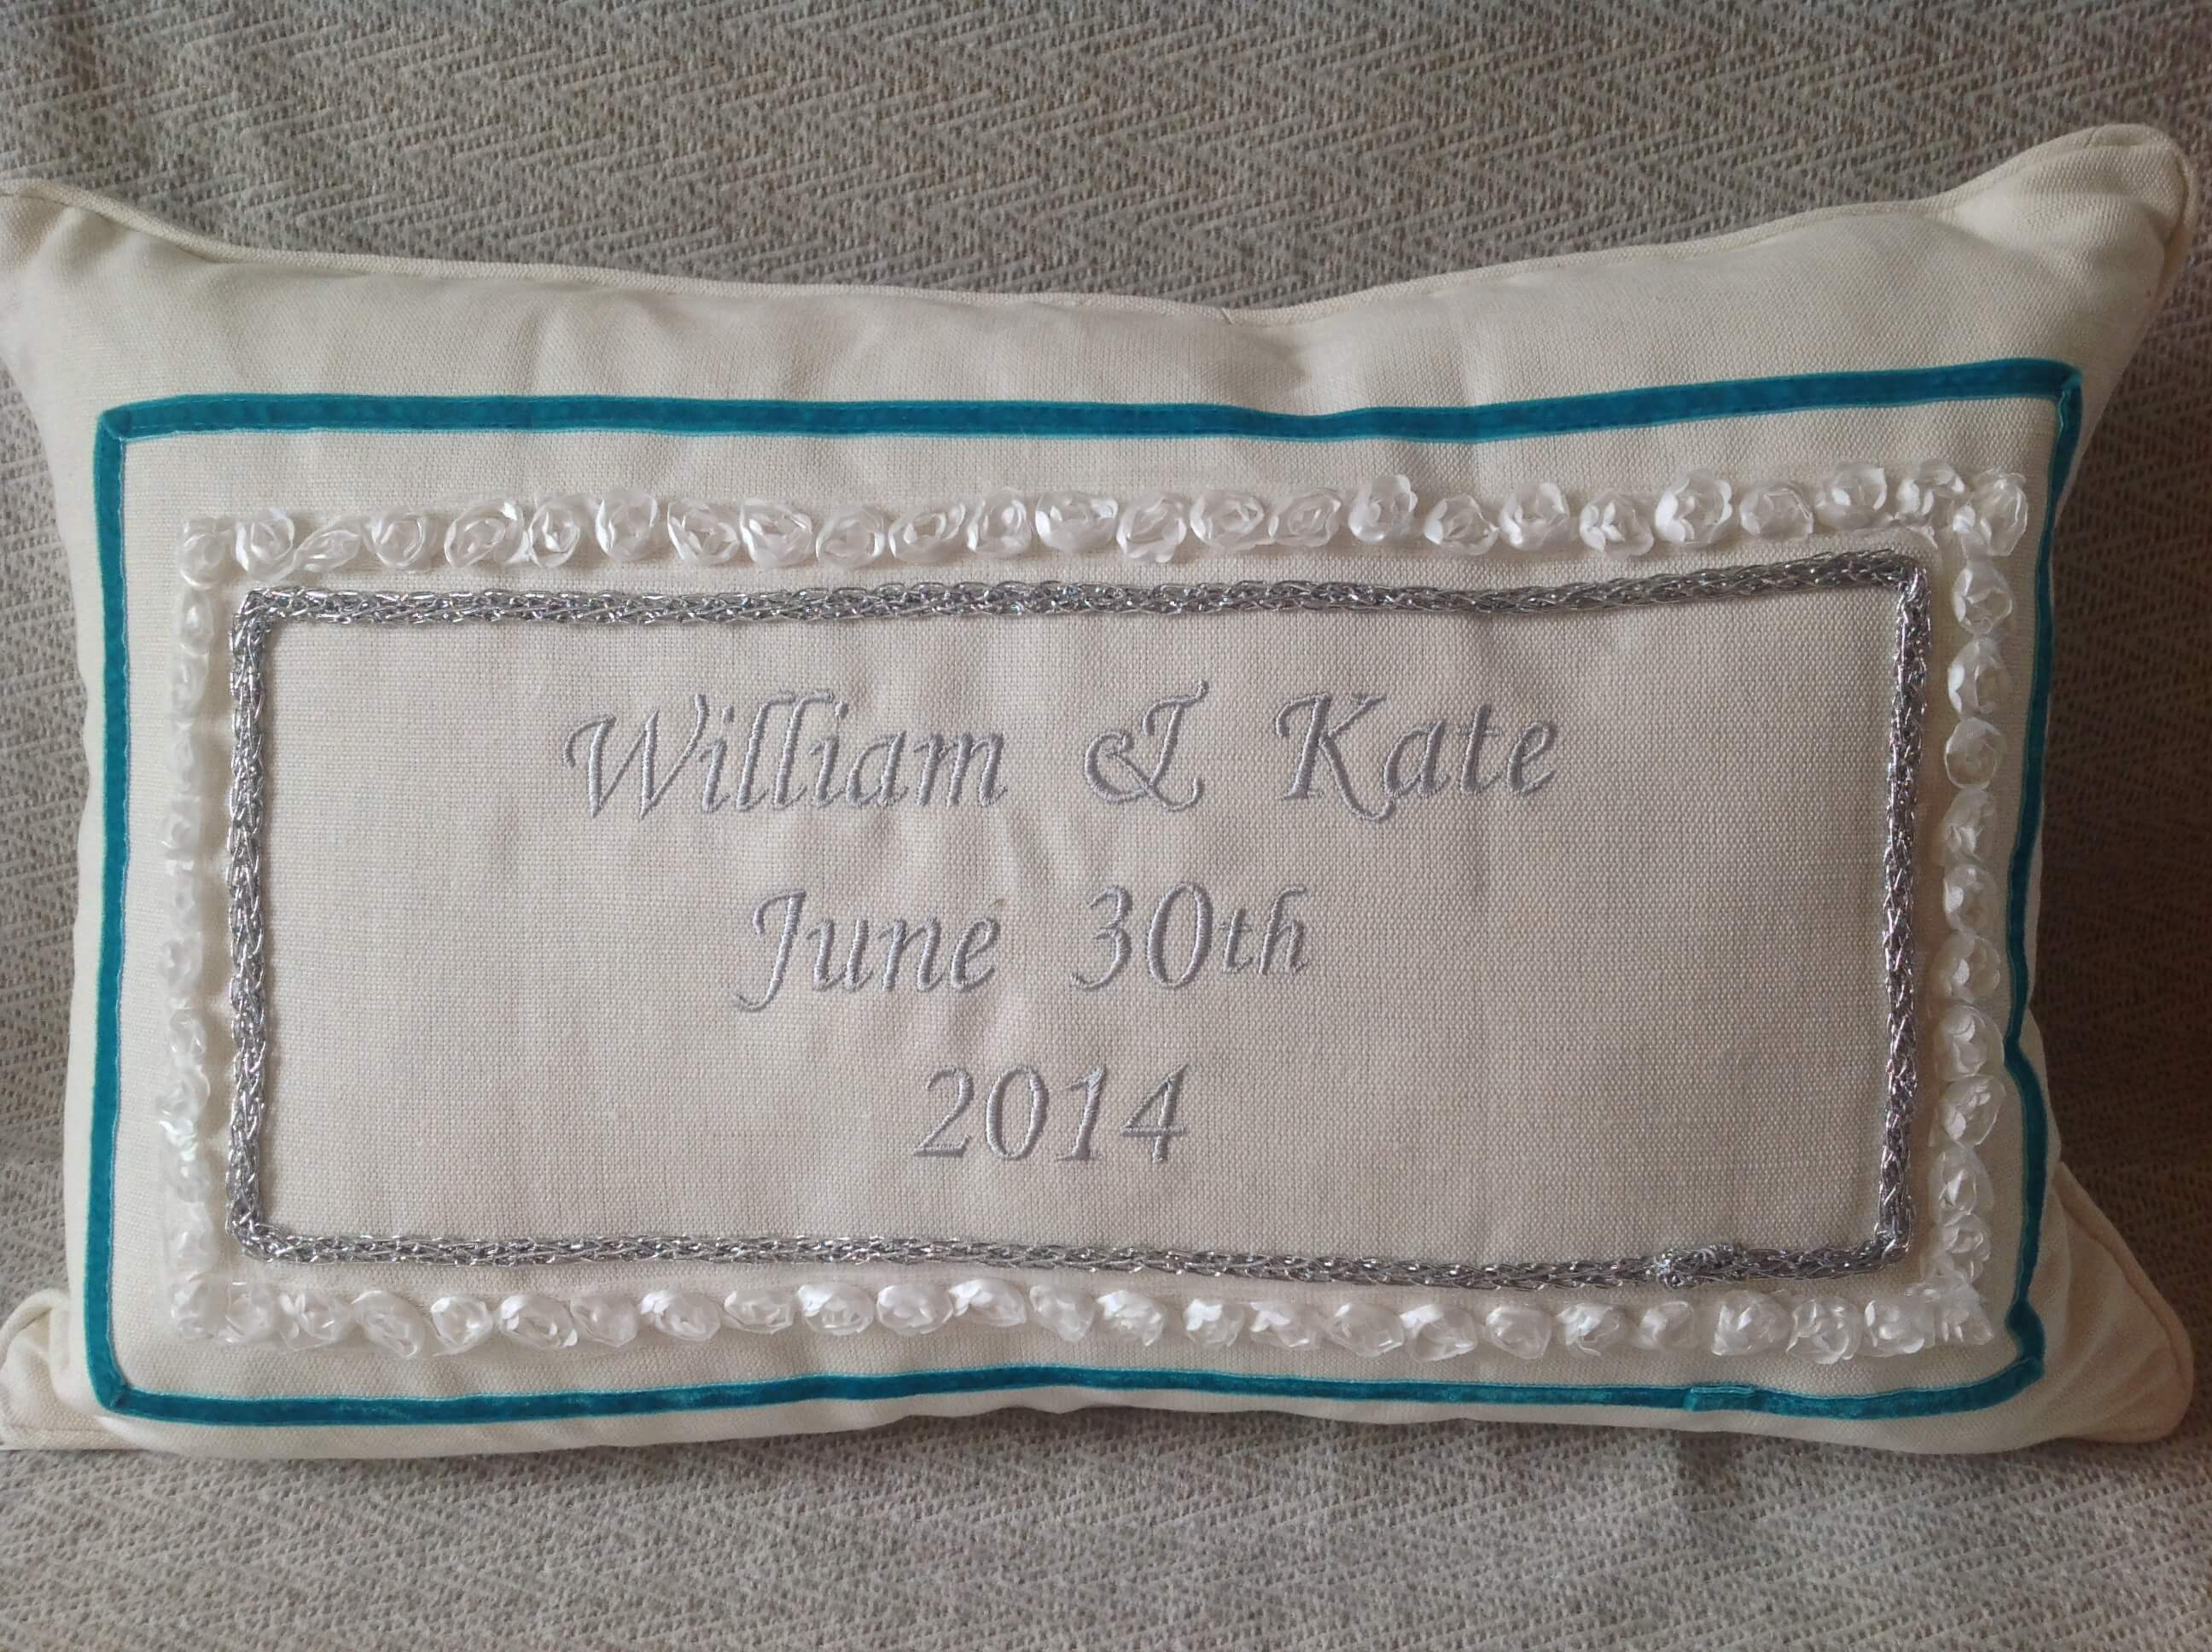 Winning Memories Wedding Cushion